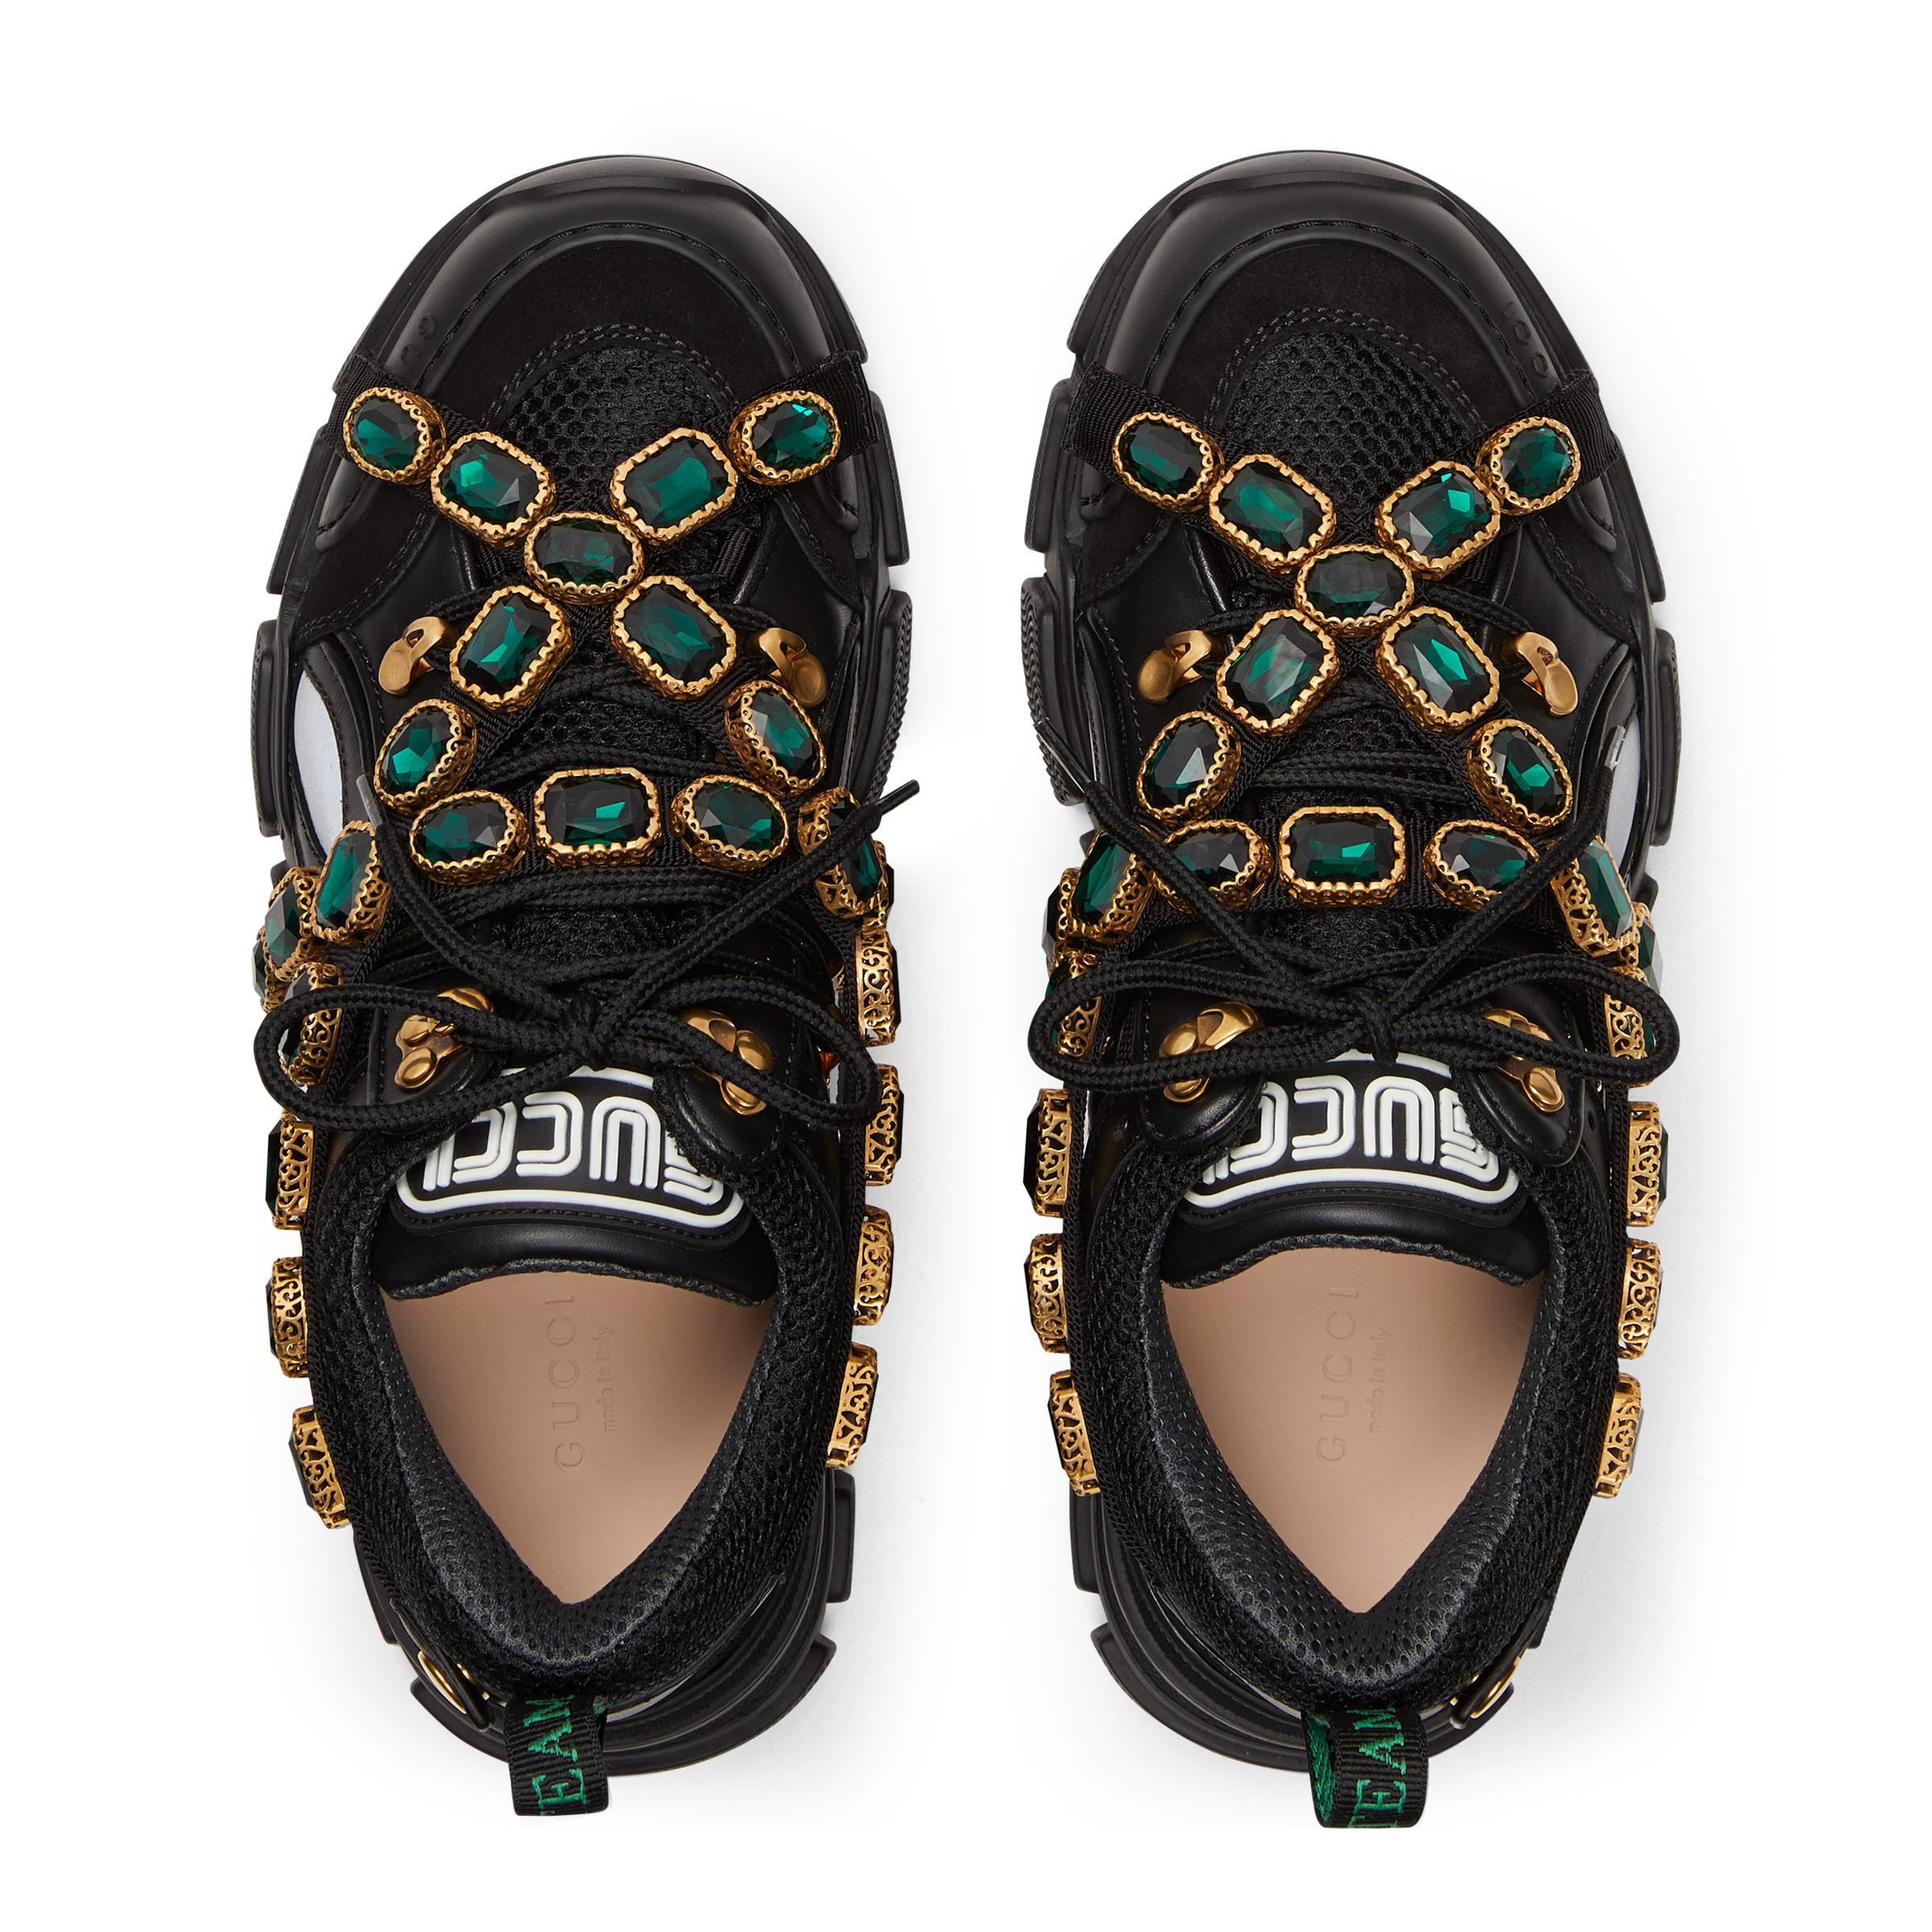 be83a3ced83 Gucci - Black Flashtrek Sneaker With Removable Crystals - Lyst. View  fullscreen